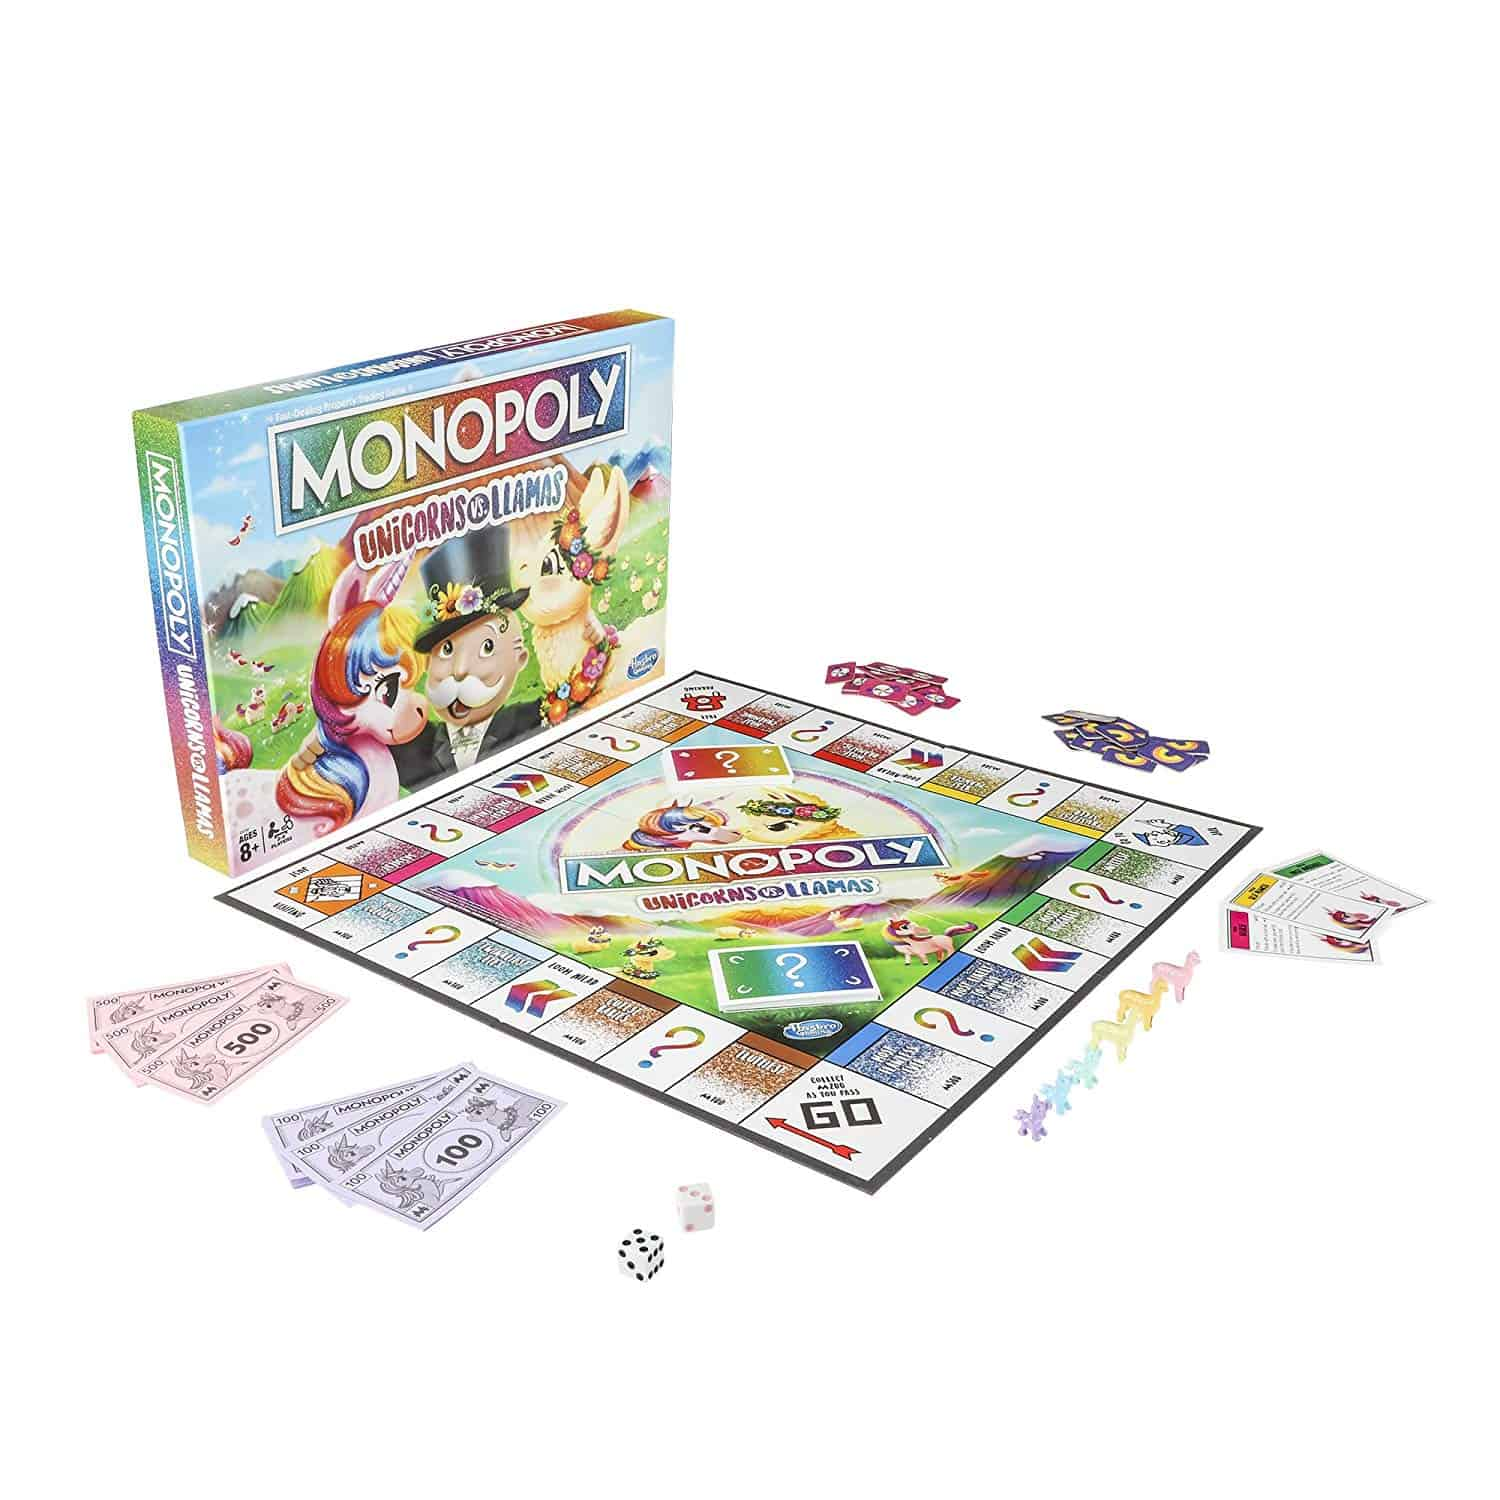 Monopoly Unicorns vs LLamas 2019 Holiday Gift Guide for All Ages